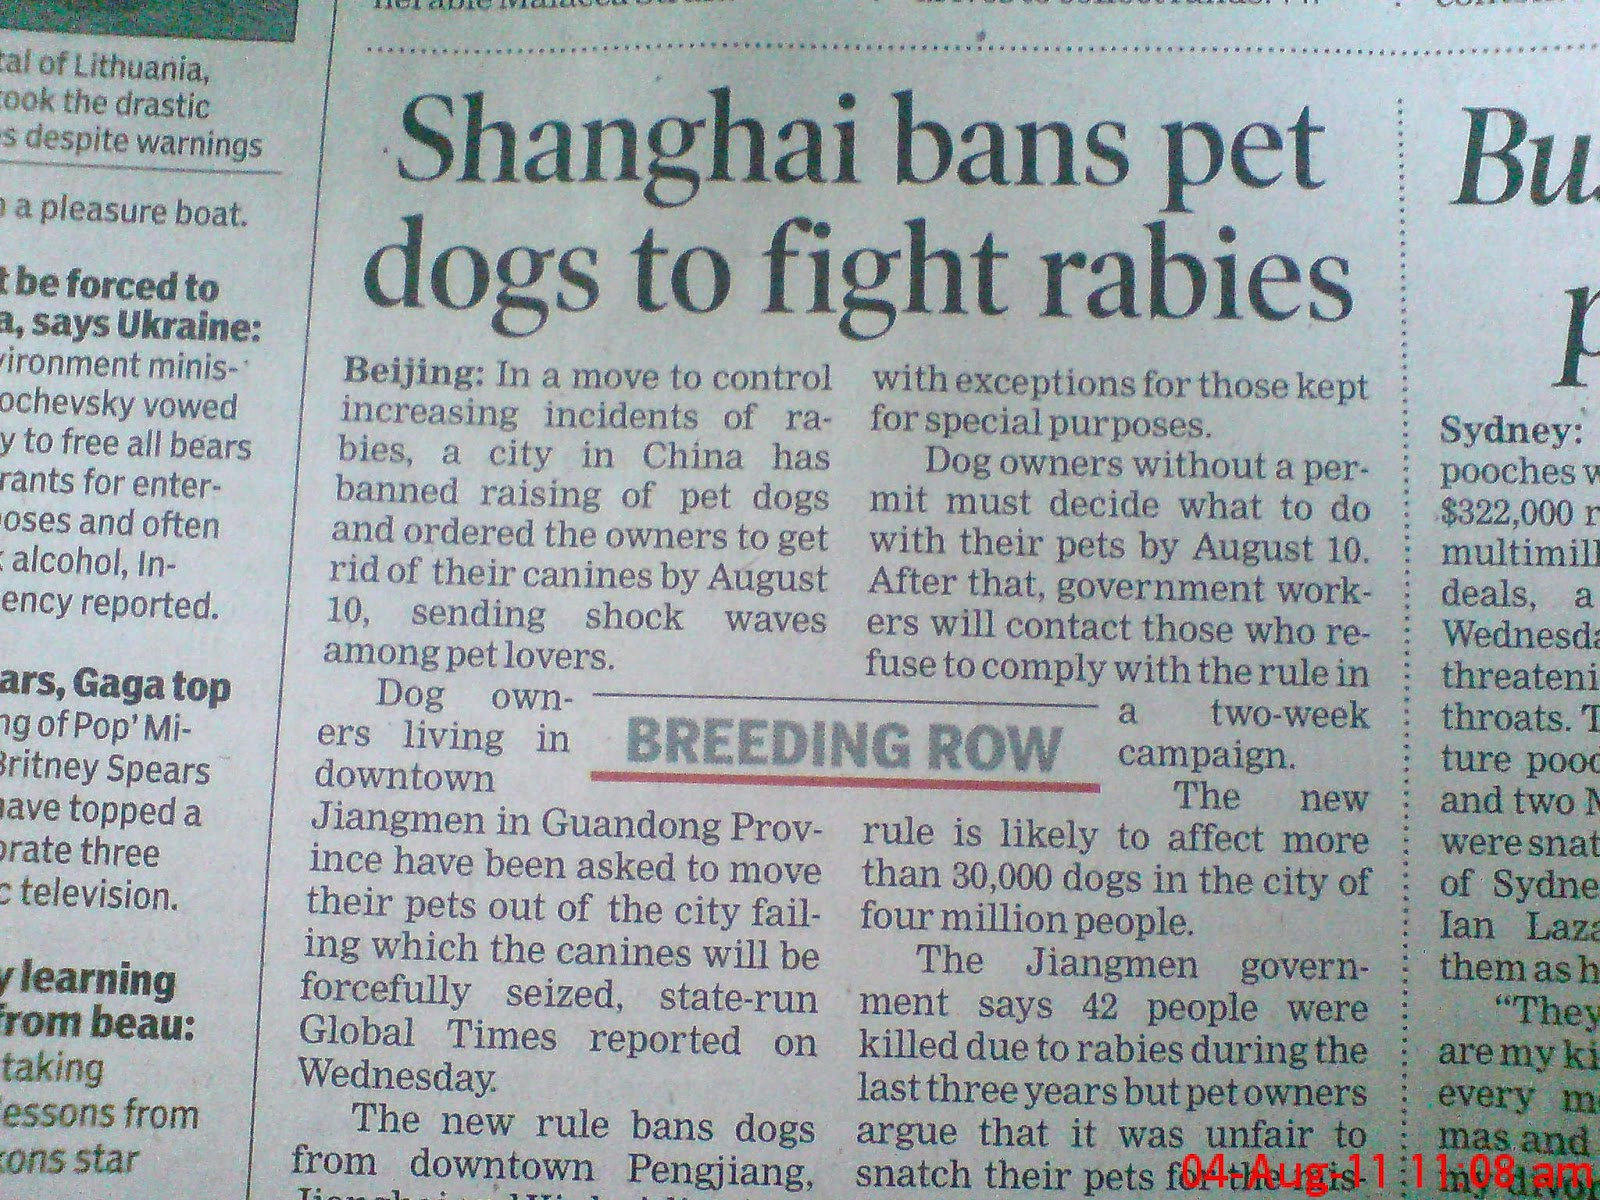 Shanghai bans pet dogs to fight rabies.